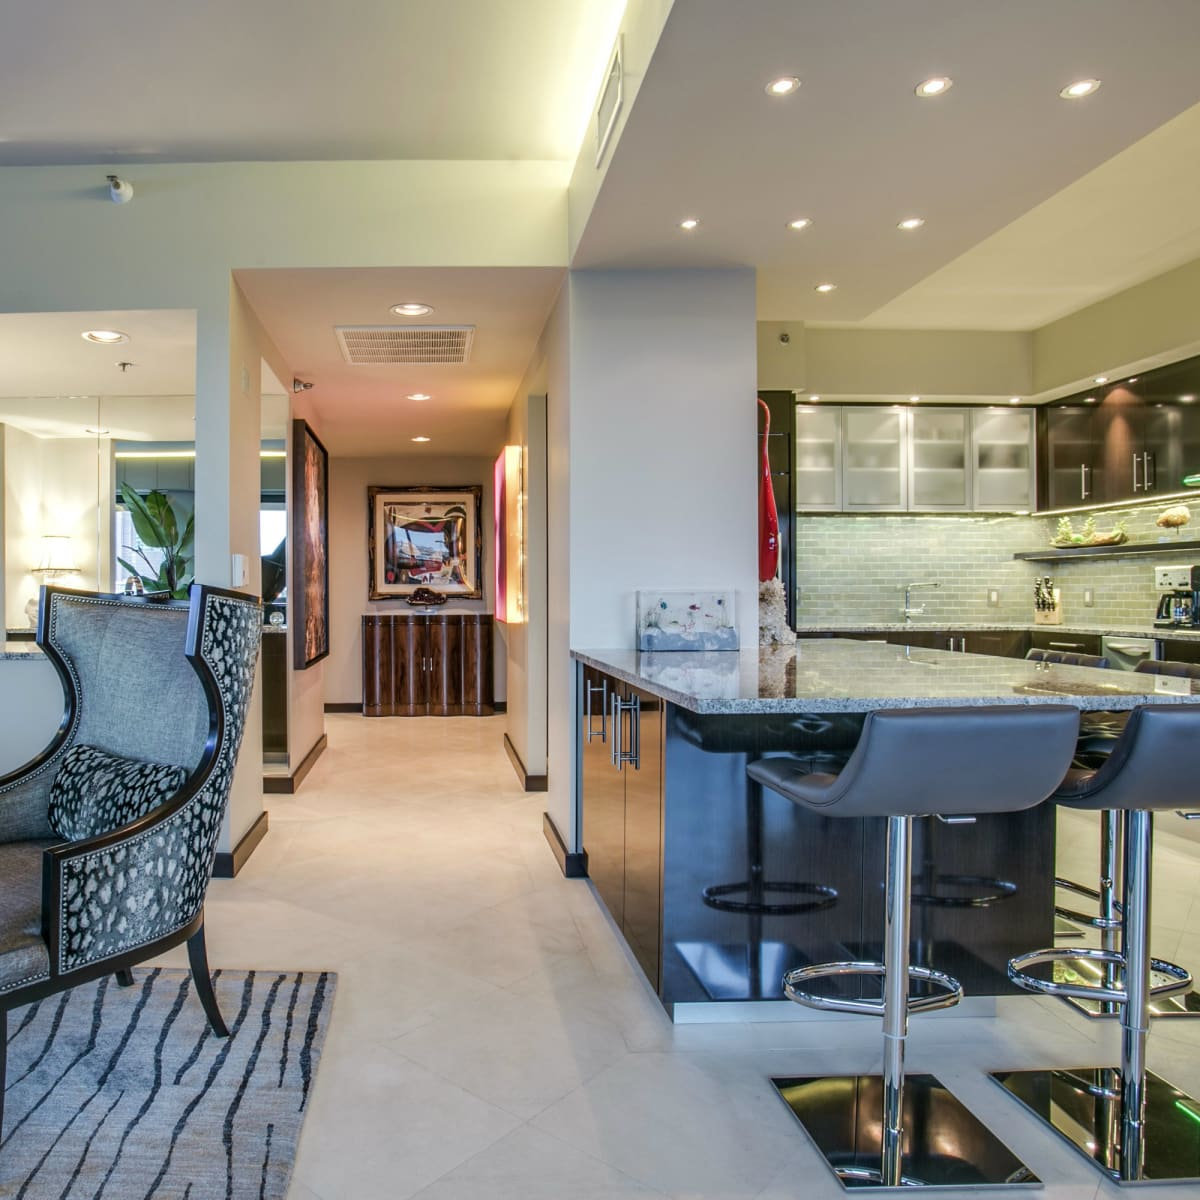 Kitchen and living area at 3831 Turtle Creek Blvd. in Dallas